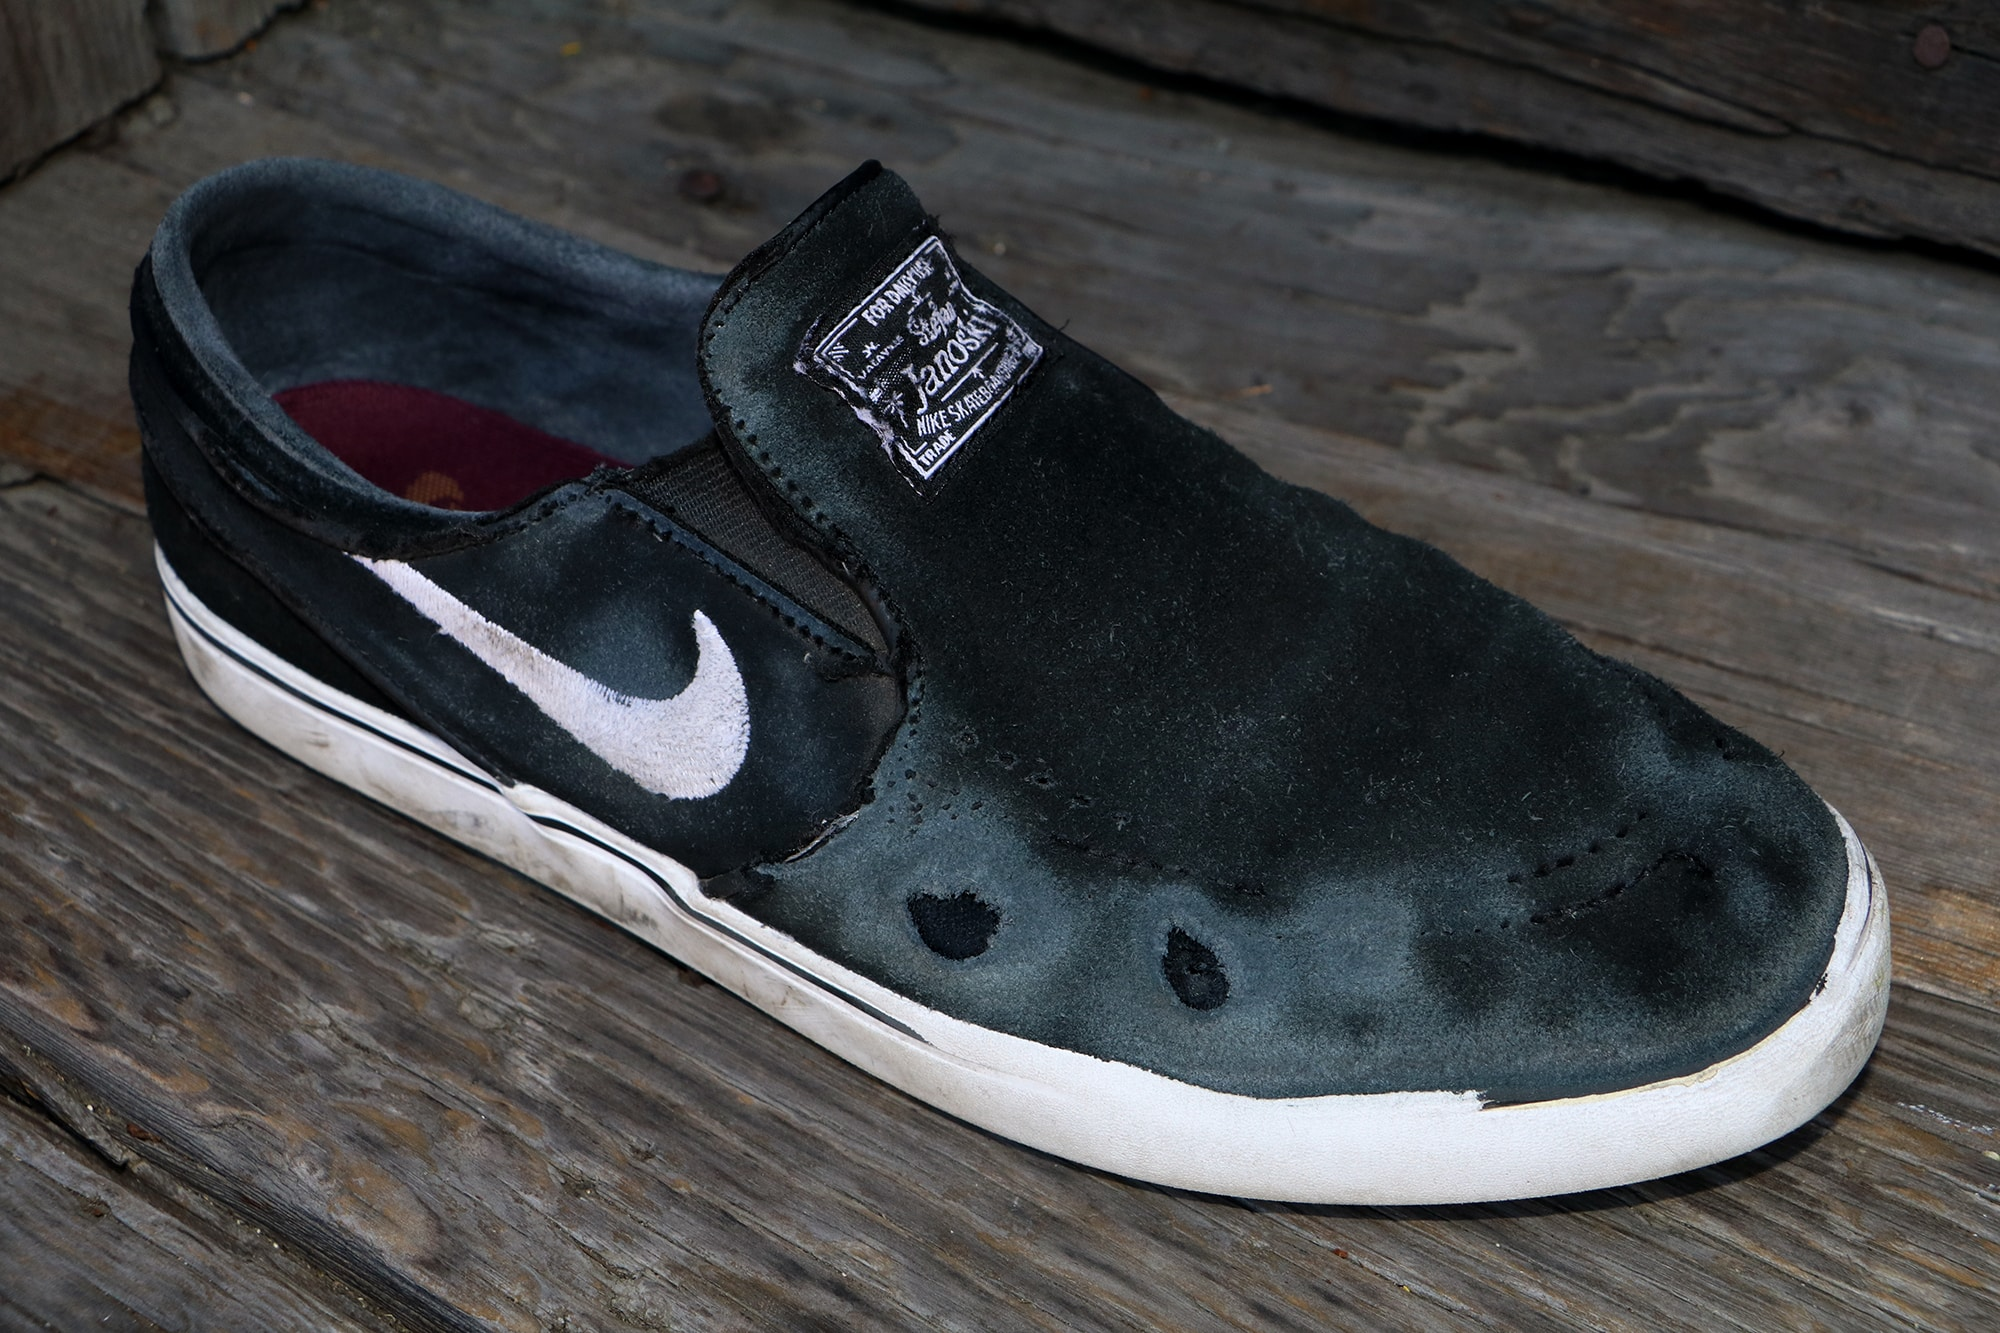 Pólvora Esperar algo dos  Nike SB Janoski Slip Skate Shoes Wear Test Review | Tactics